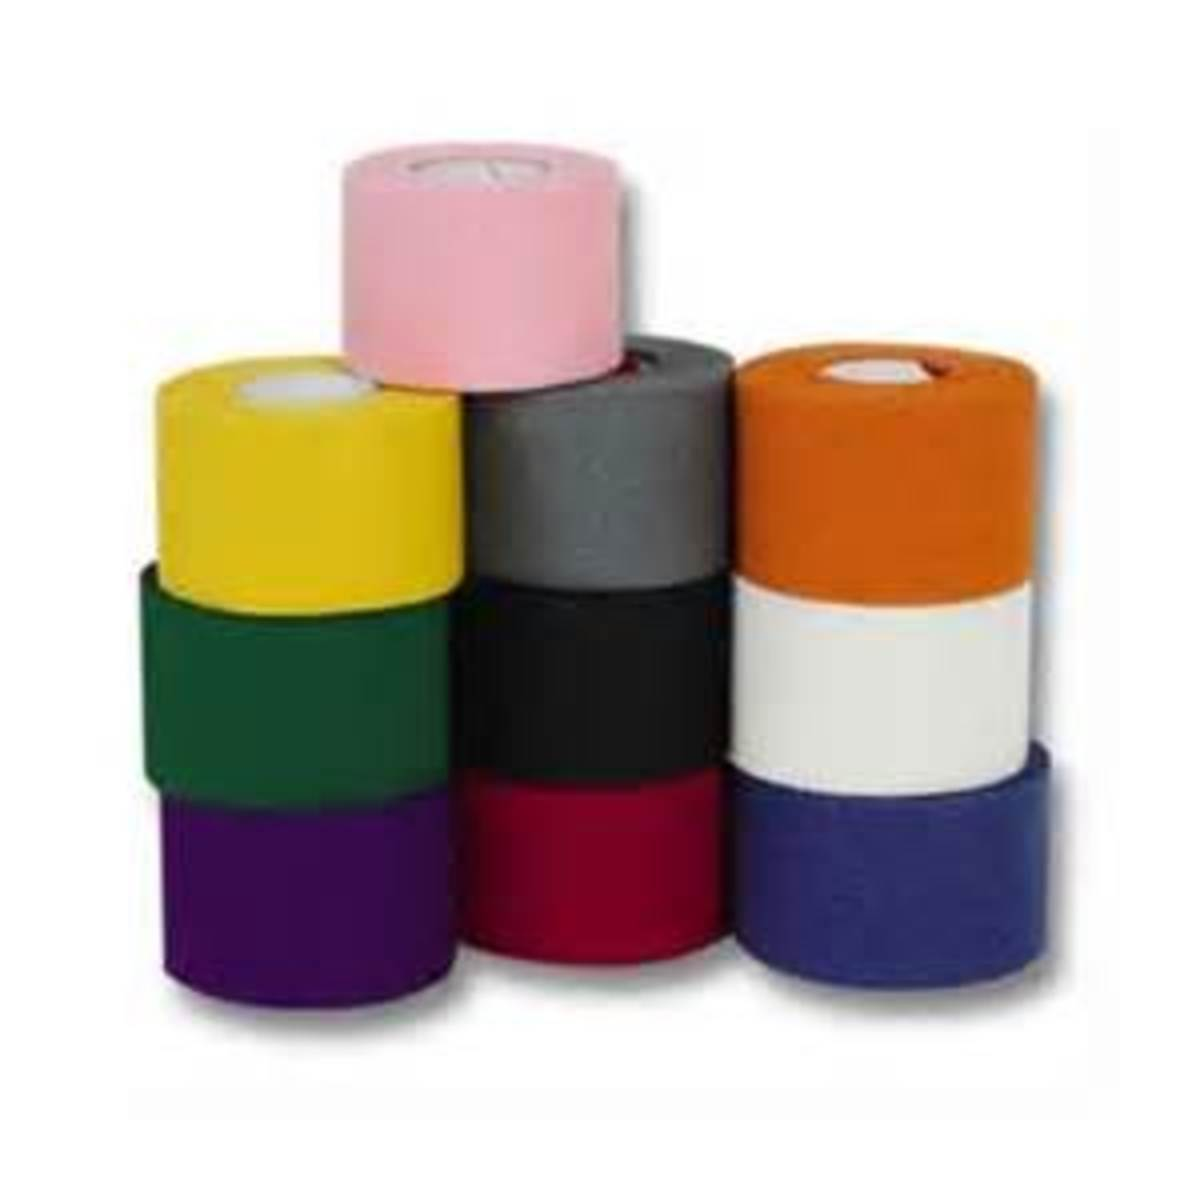 Athletic tape comes in many different colors